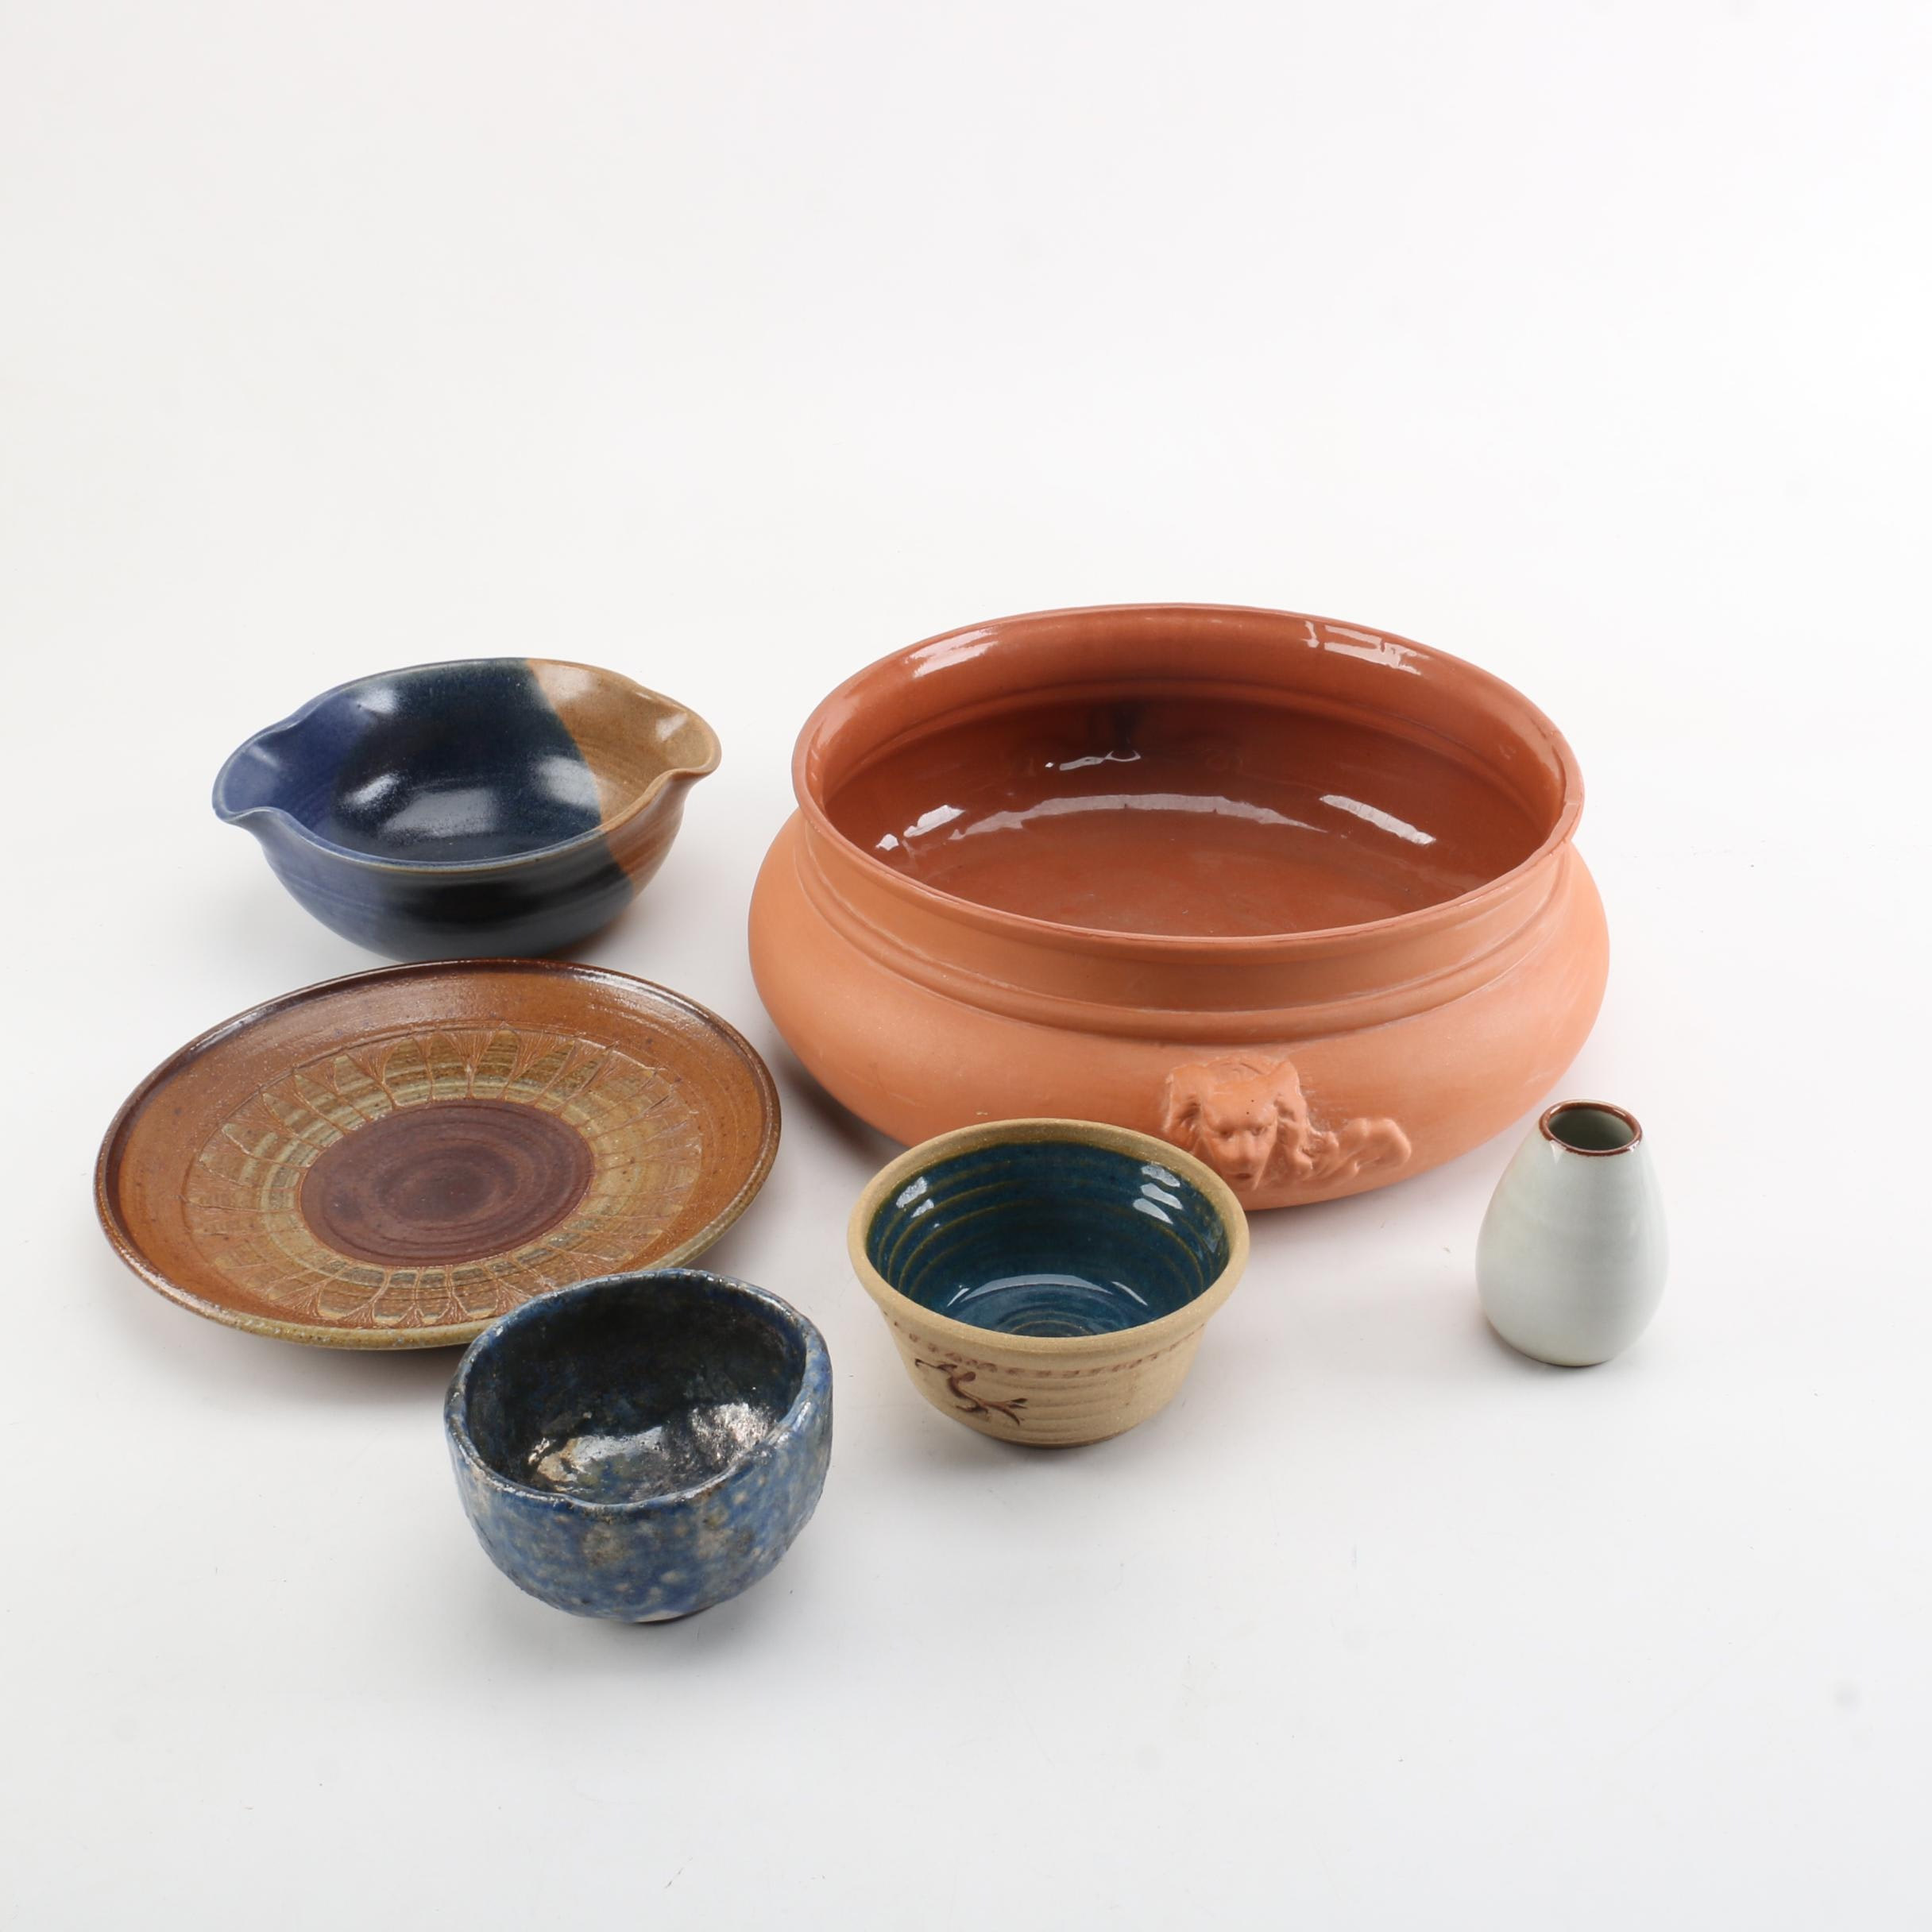 Art Pottery Bowls and Vase